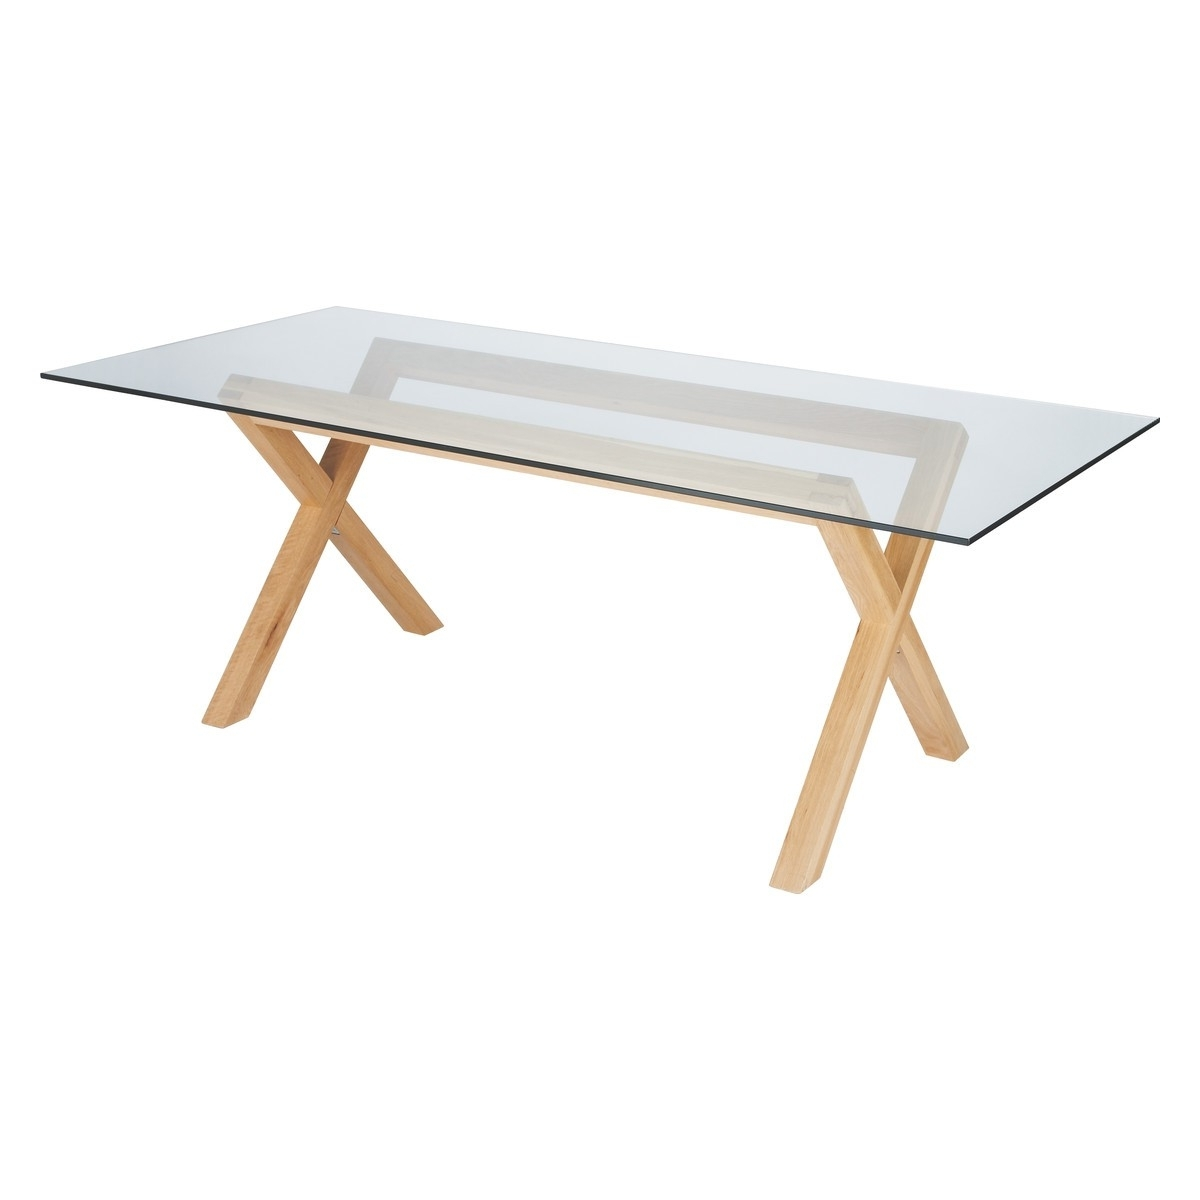 Buy Now At Habitat Uk In Most Current Glasses Dining Tables (Gallery 8 of 25)